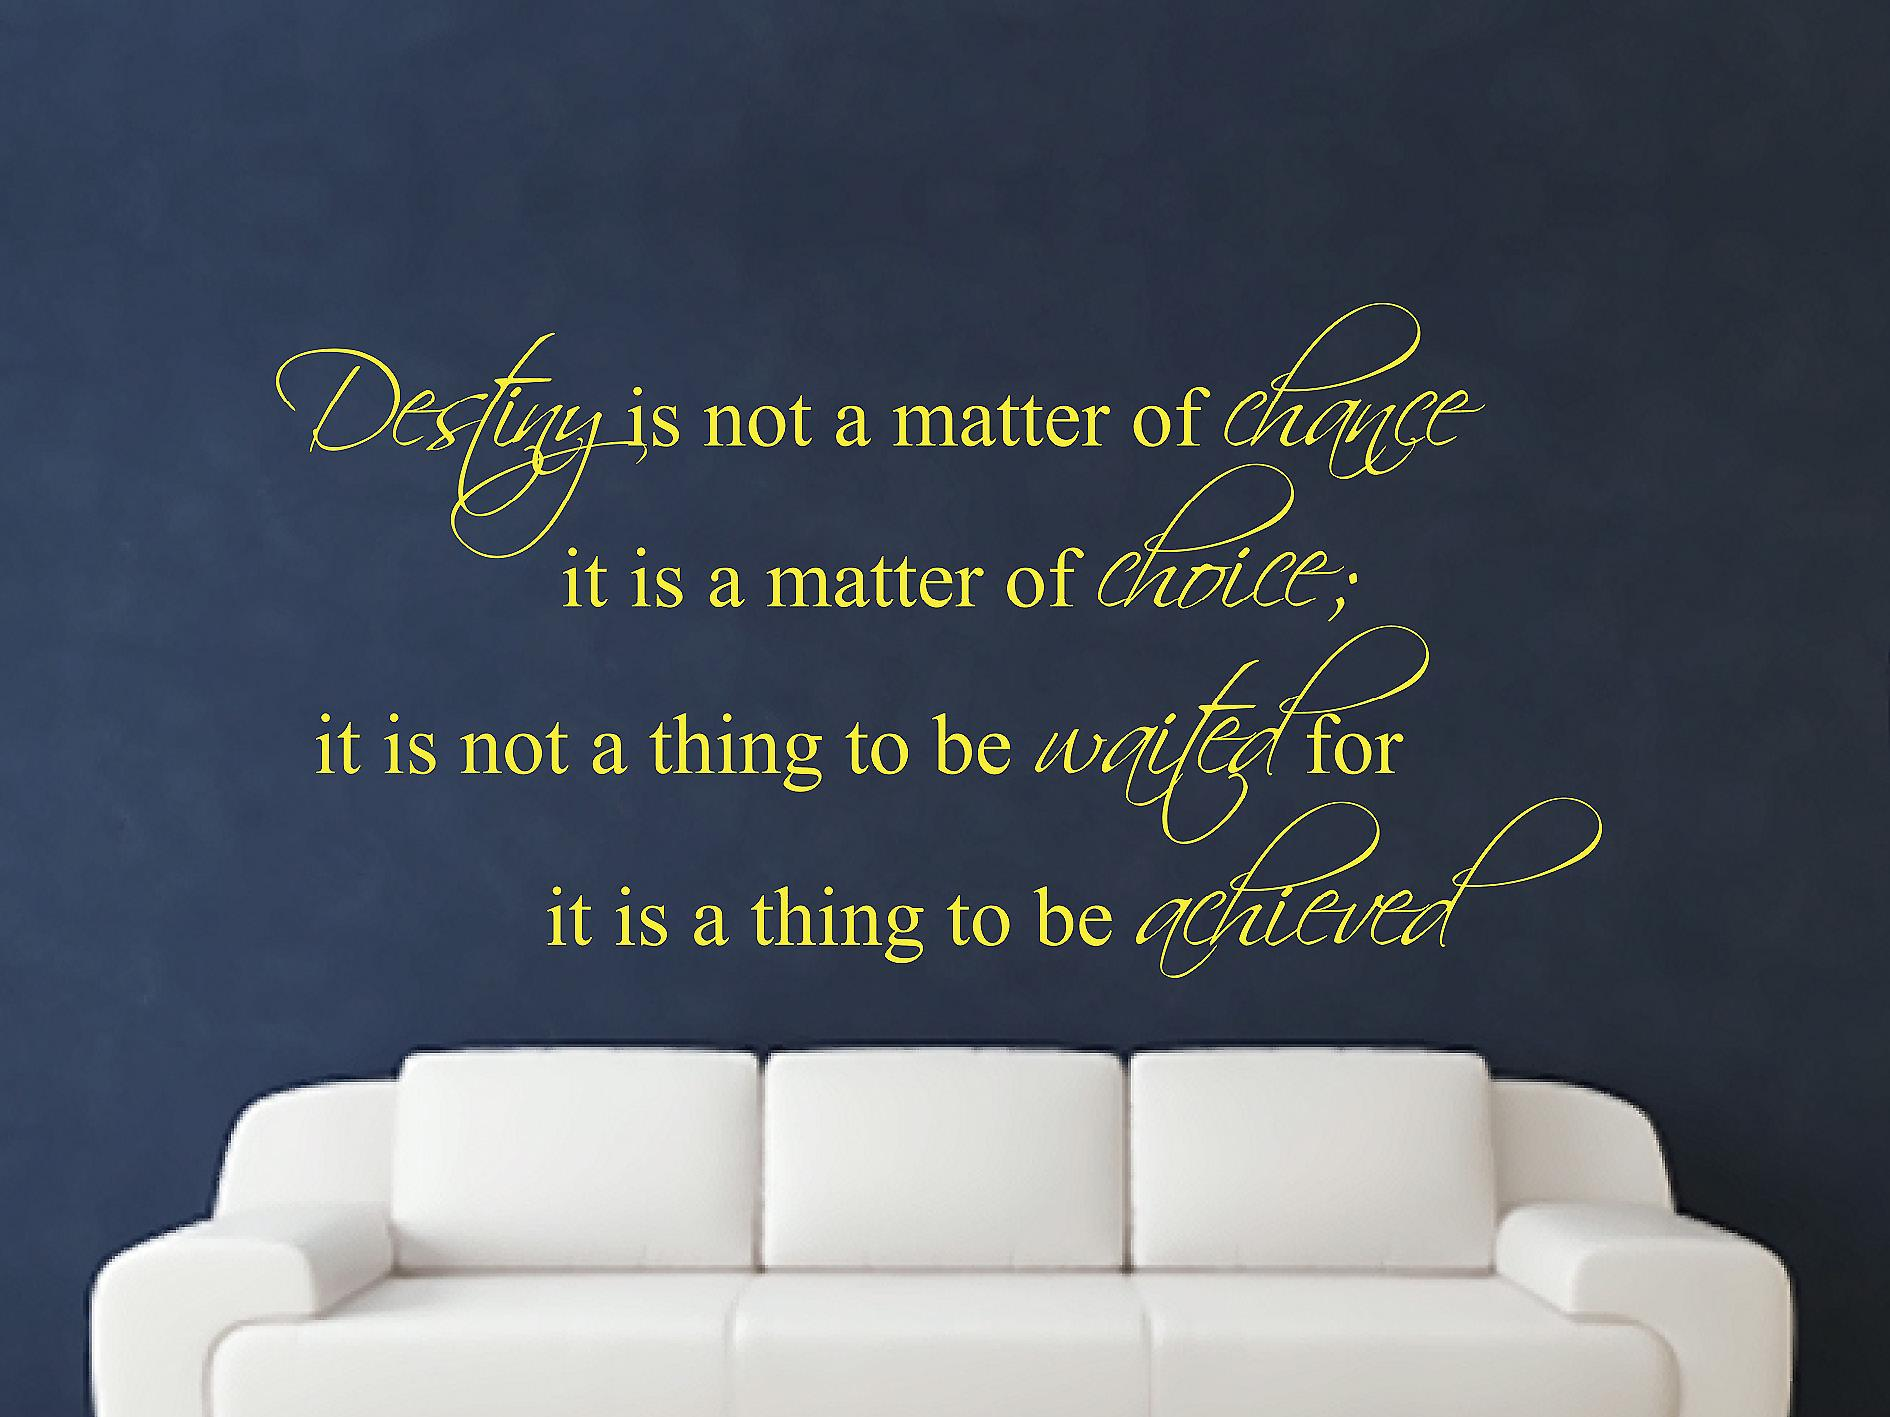 Destiny Is Not A Matter of Chance Wall Art Sticker - Sulphur